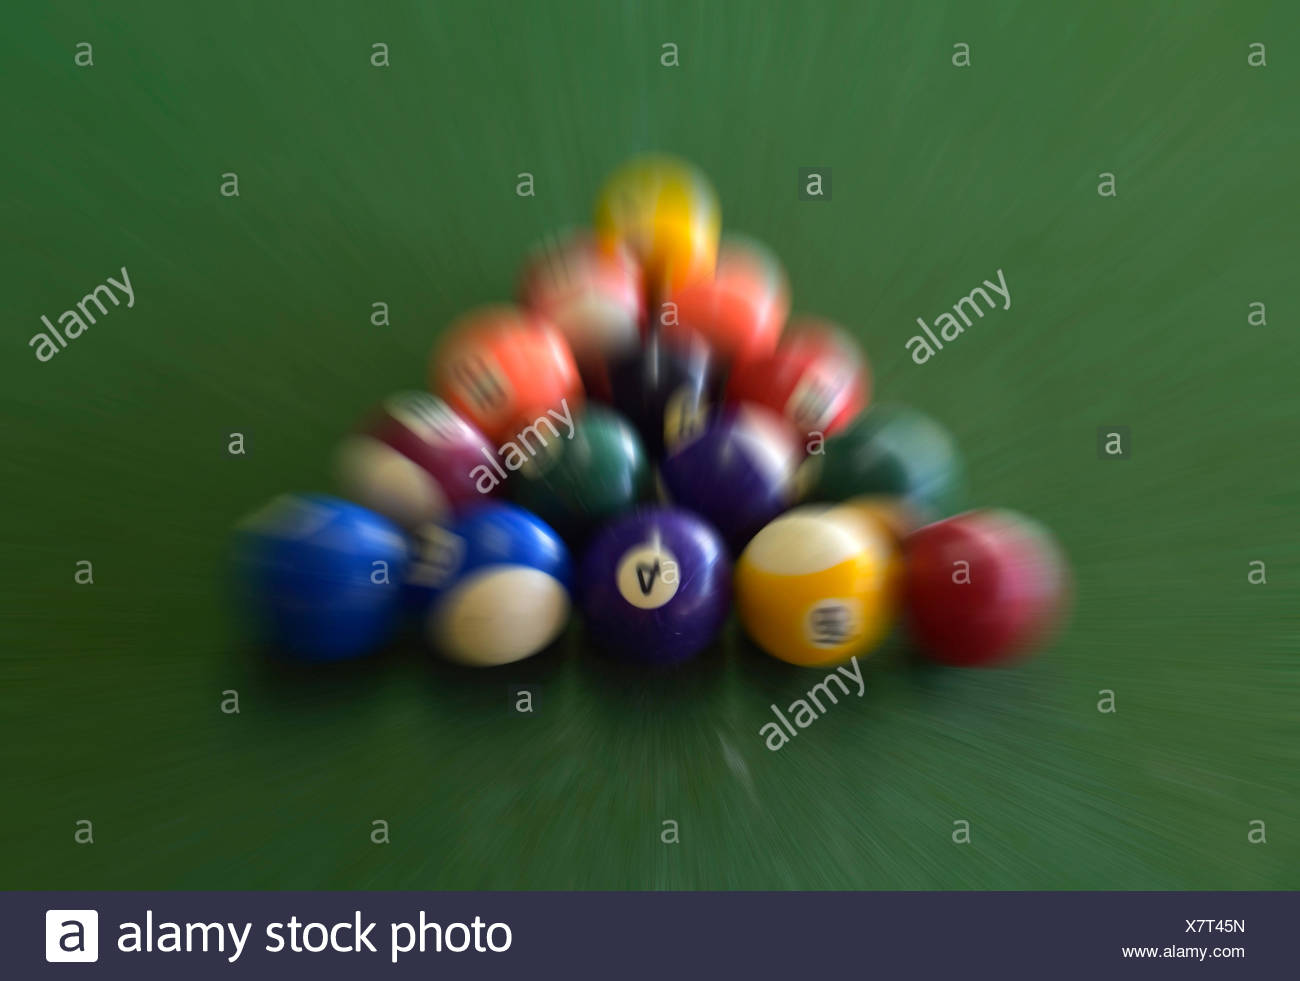 shot snooker pool made of with balls table billiard what are